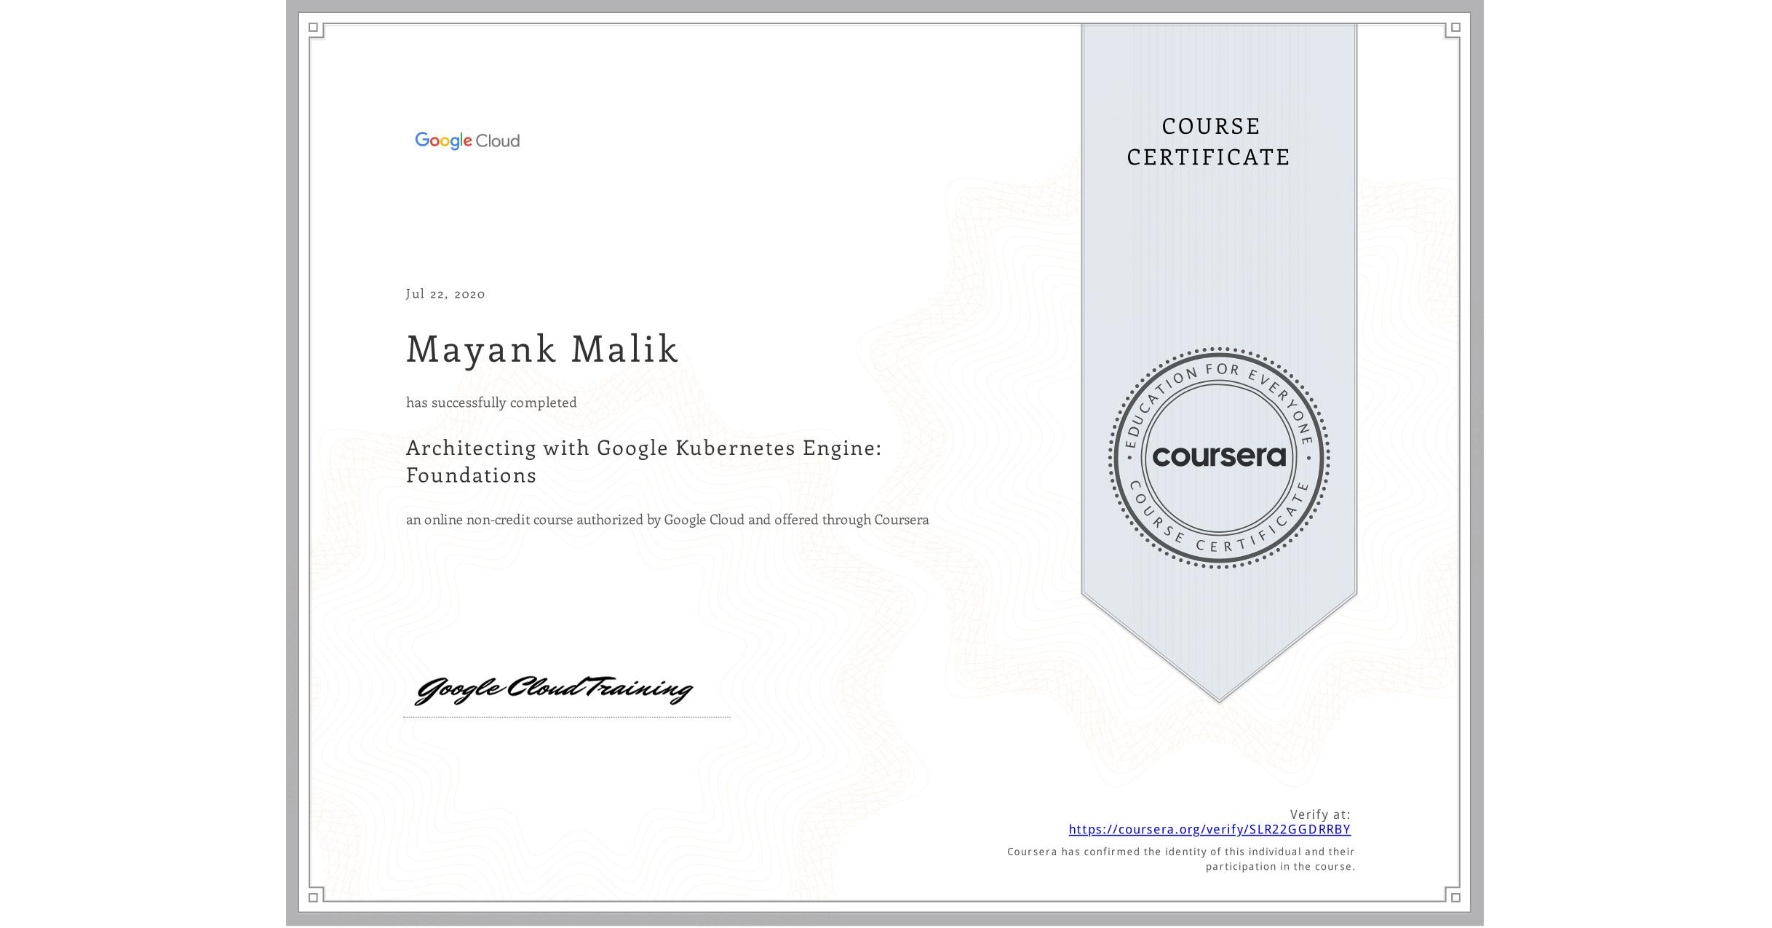 View certificate for Mayank Malik, Architecting with Google Kubernetes Engine: Foundations, an online non-credit course authorized by Google Cloud and offered through Coursera